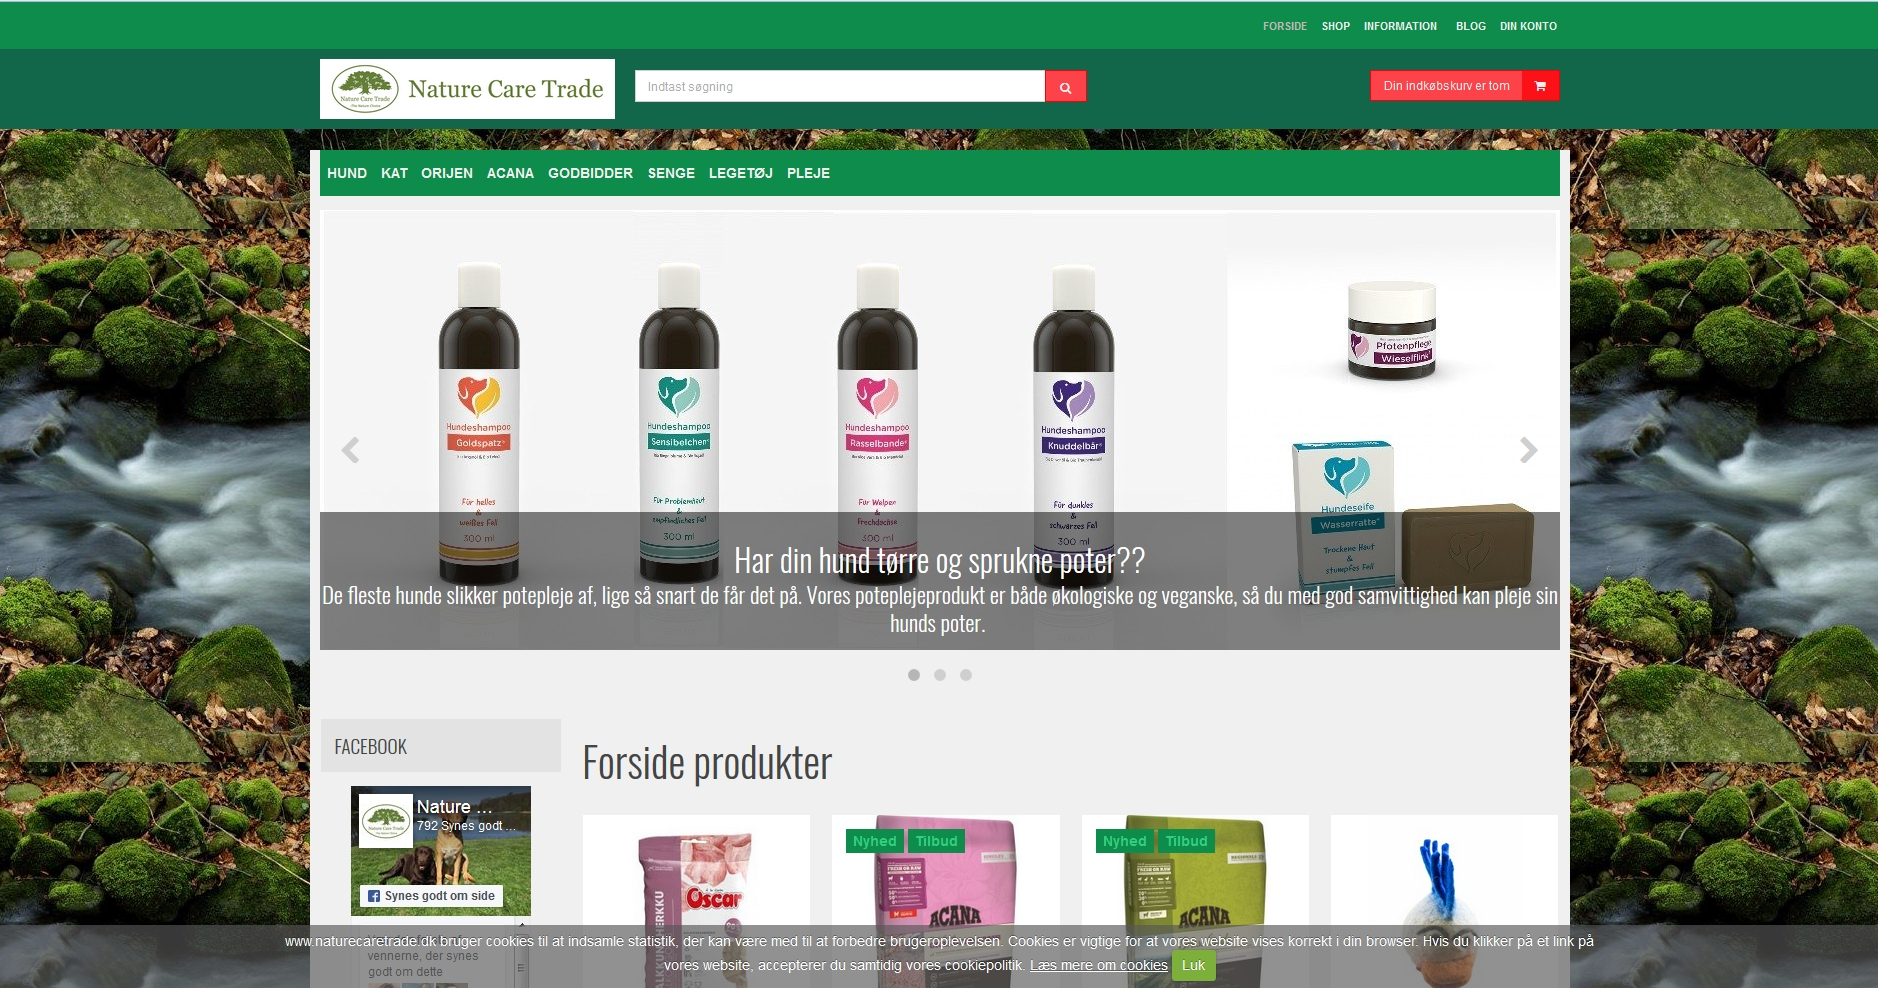 Detaljer : Nature Care Trade IVS